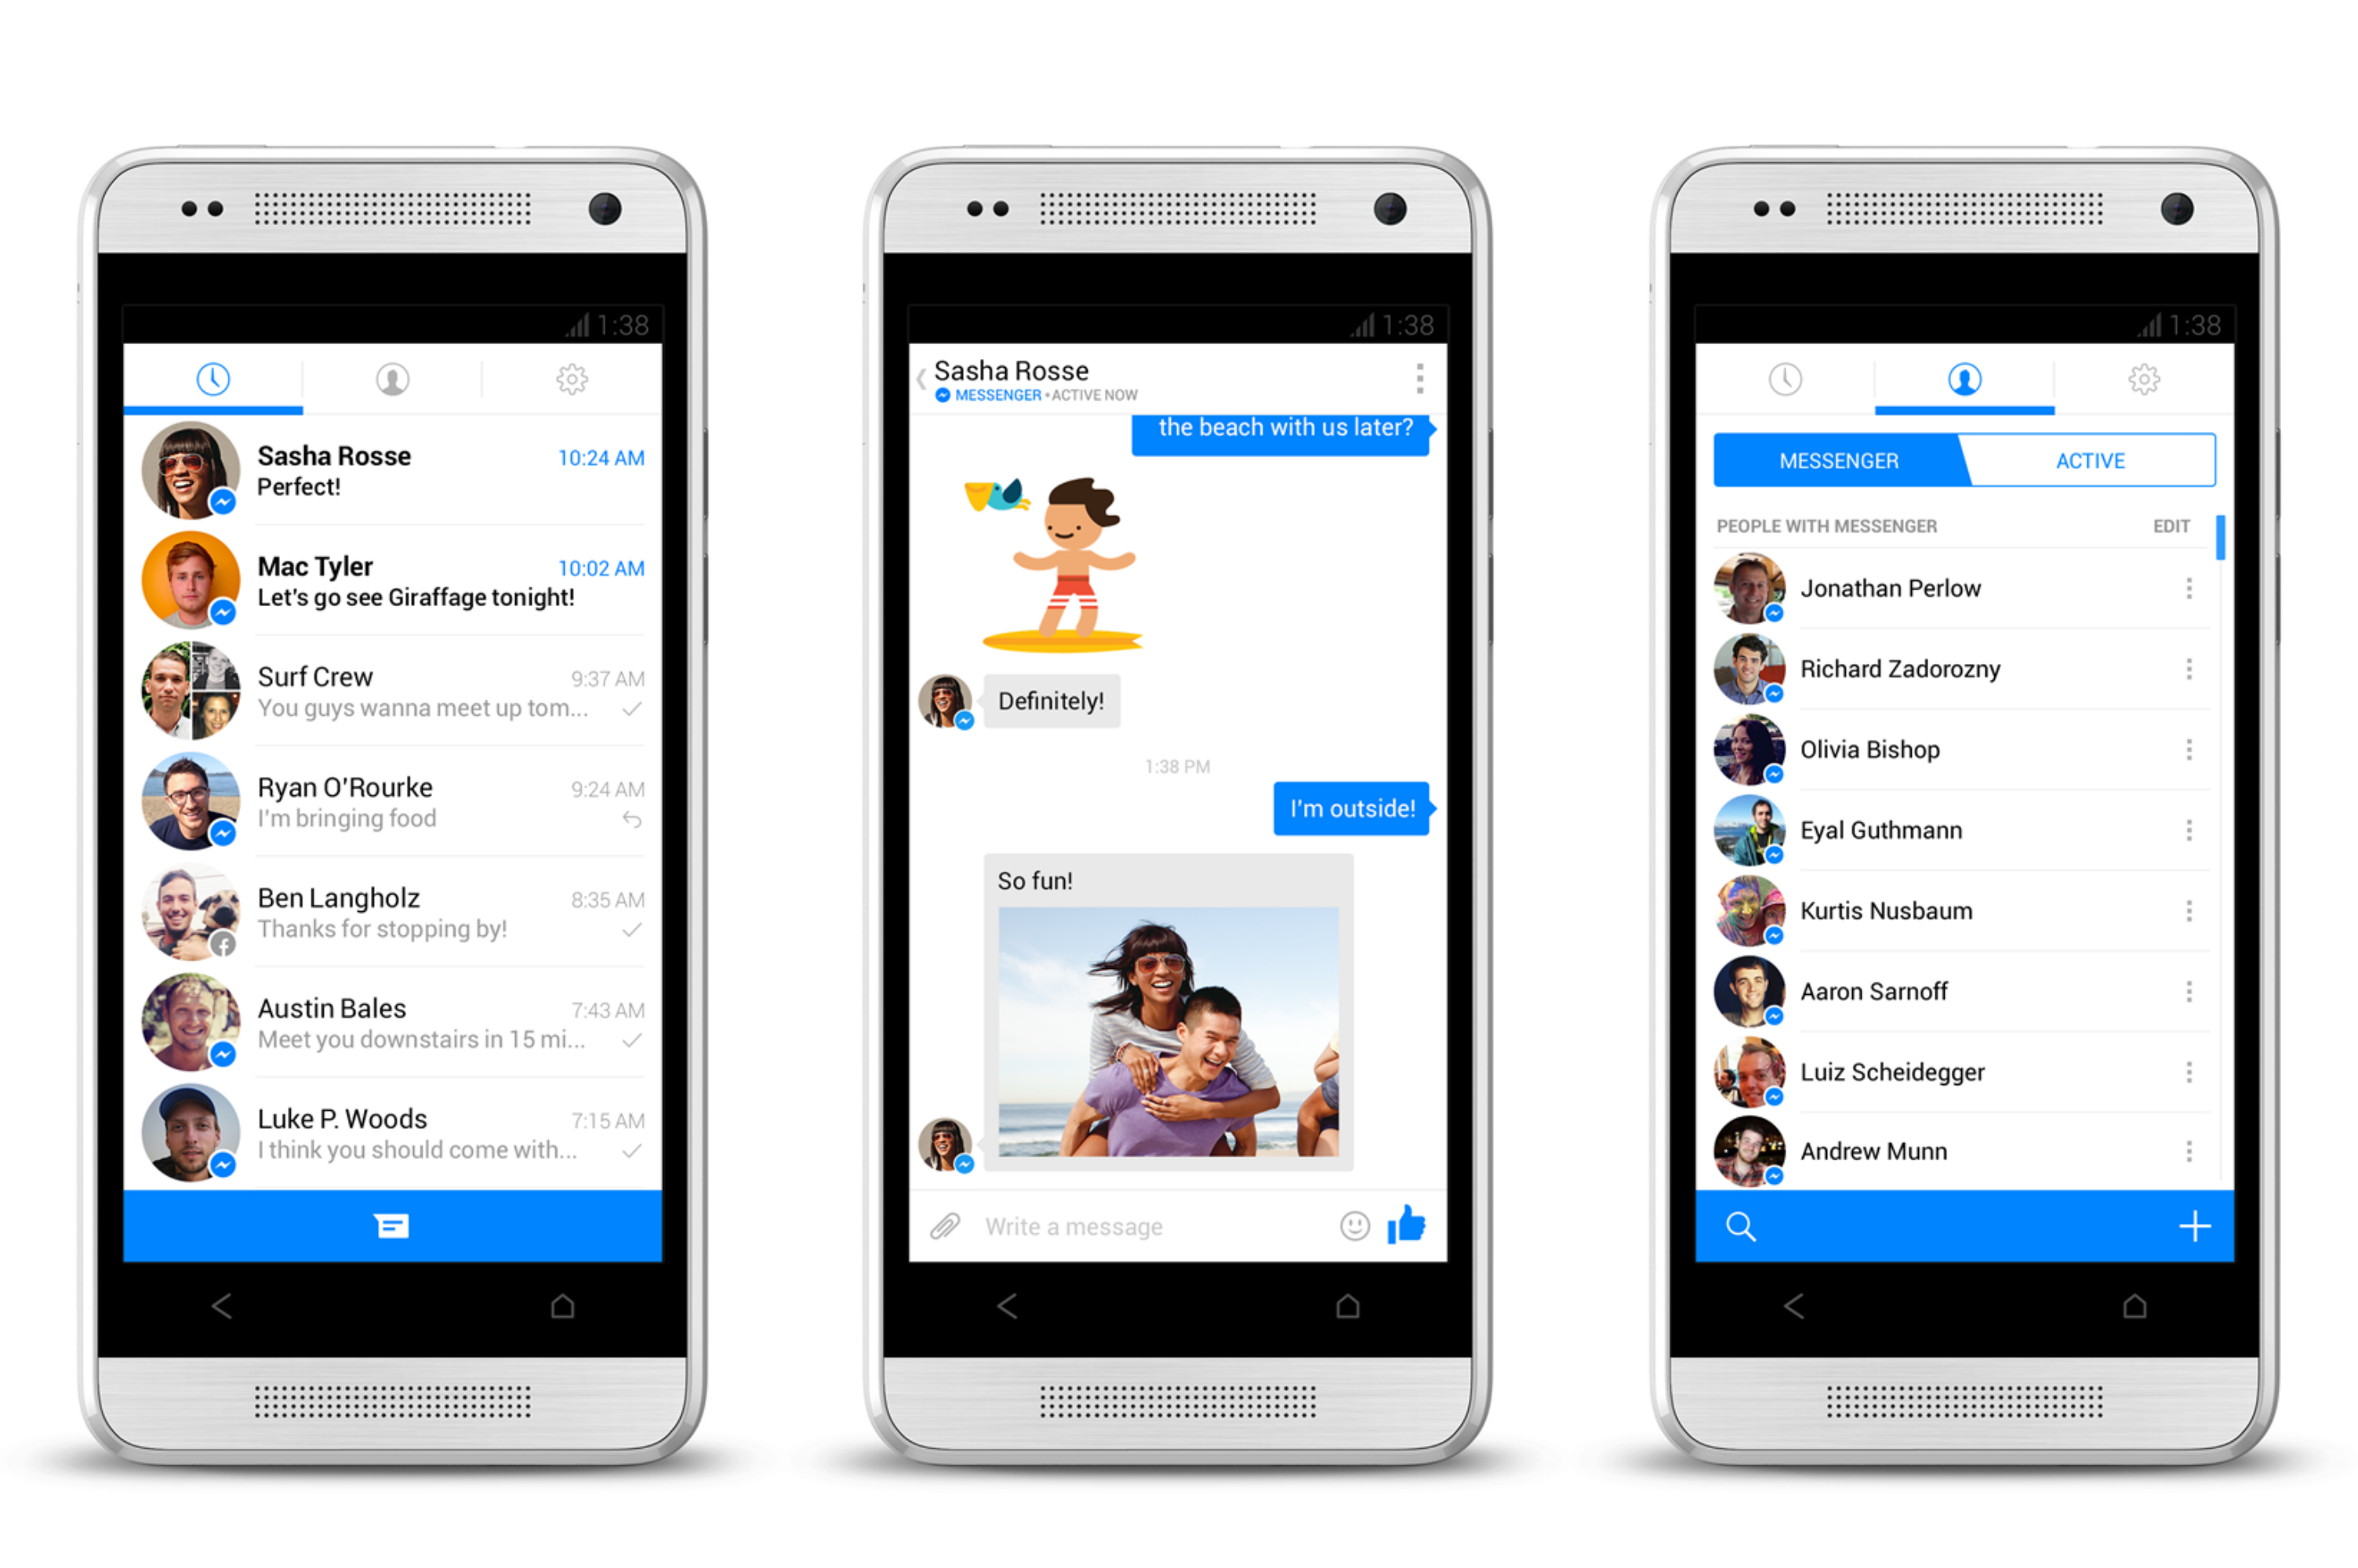 Facebook Messenger adds free WiFi calling in latest update (other